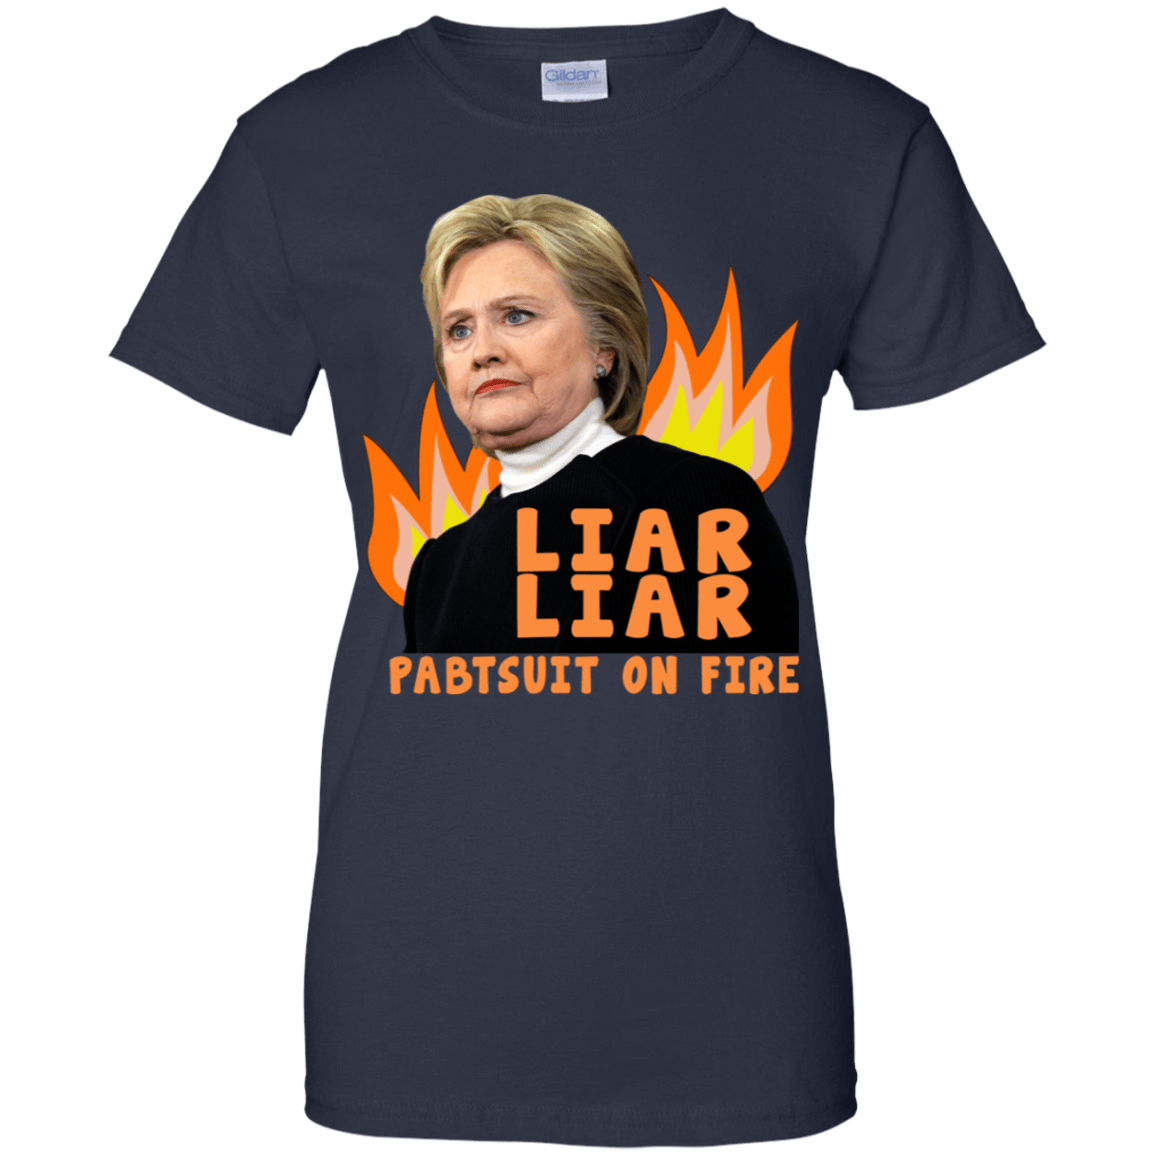 Hillary Clinton: Liar Liar Pantsuit On Fire 939-9259-74096014-44765 - Tee Ript